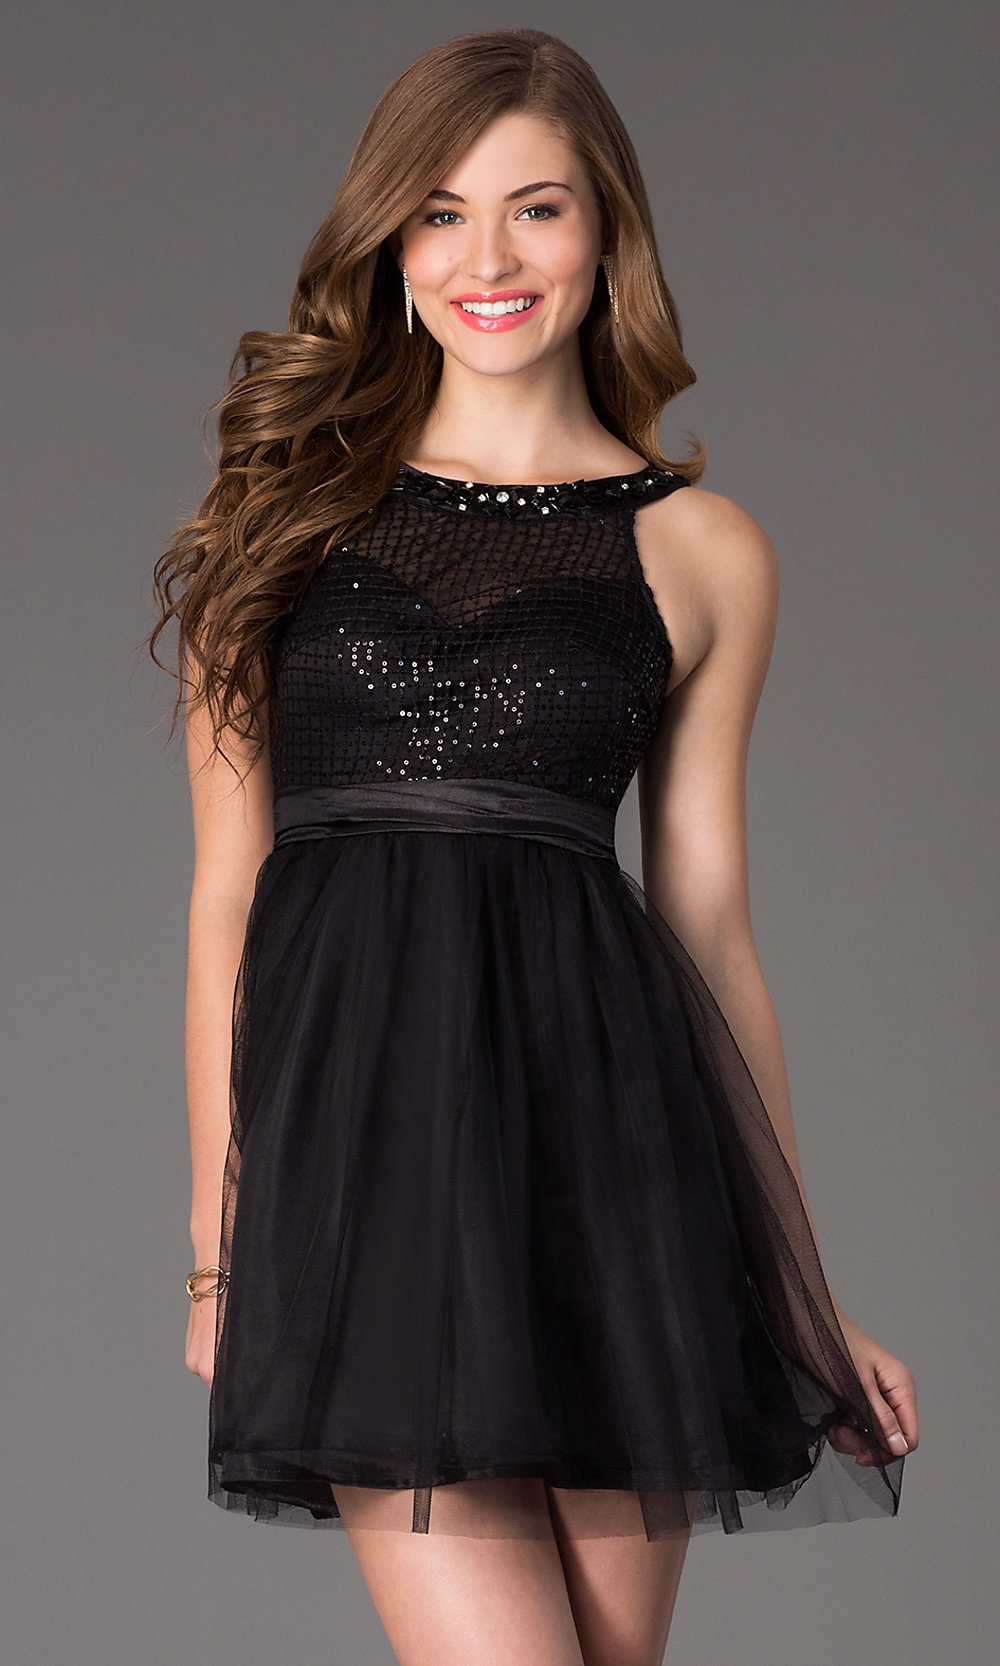 Image of Sleeveless Short Prom Dress Style  LP-22568 Front Image. Tap to  expand 9c7ea2740